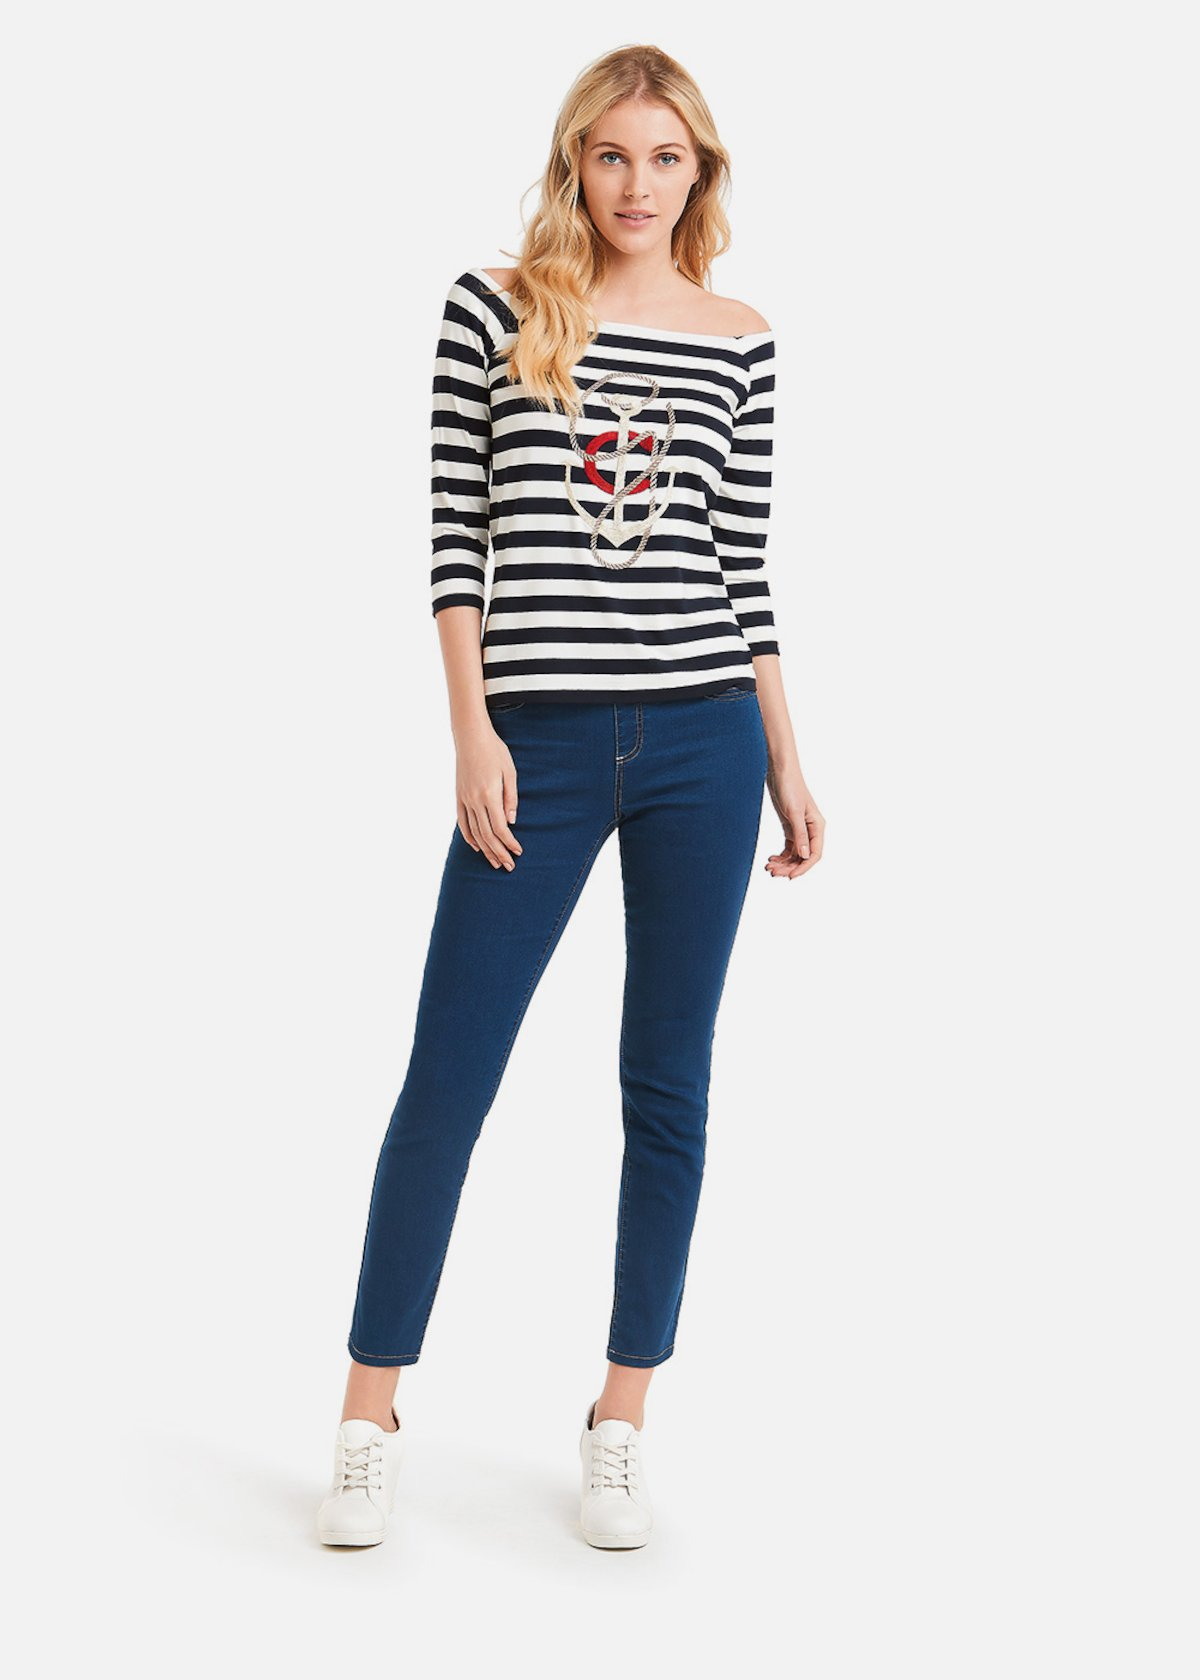 Stefany bicolour stripes t-shirt - Medium Blue  White\ Stripes